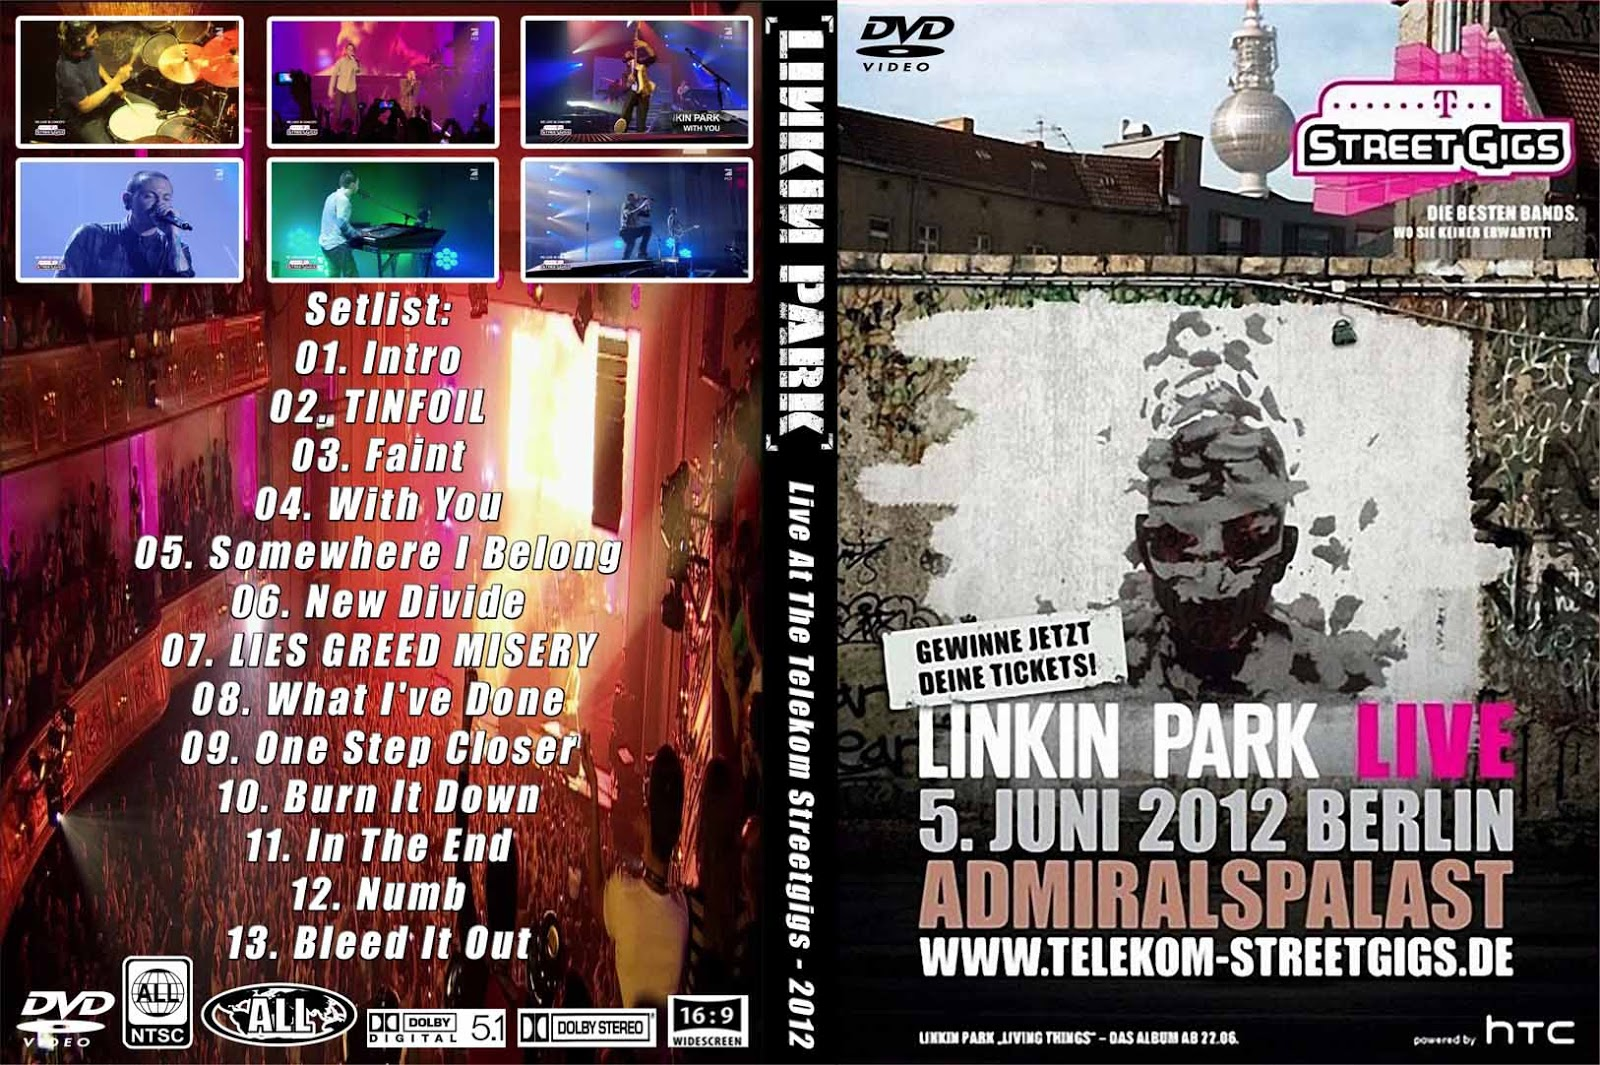 Numb linkin park download mp3 bee / JAPANROBERT GA